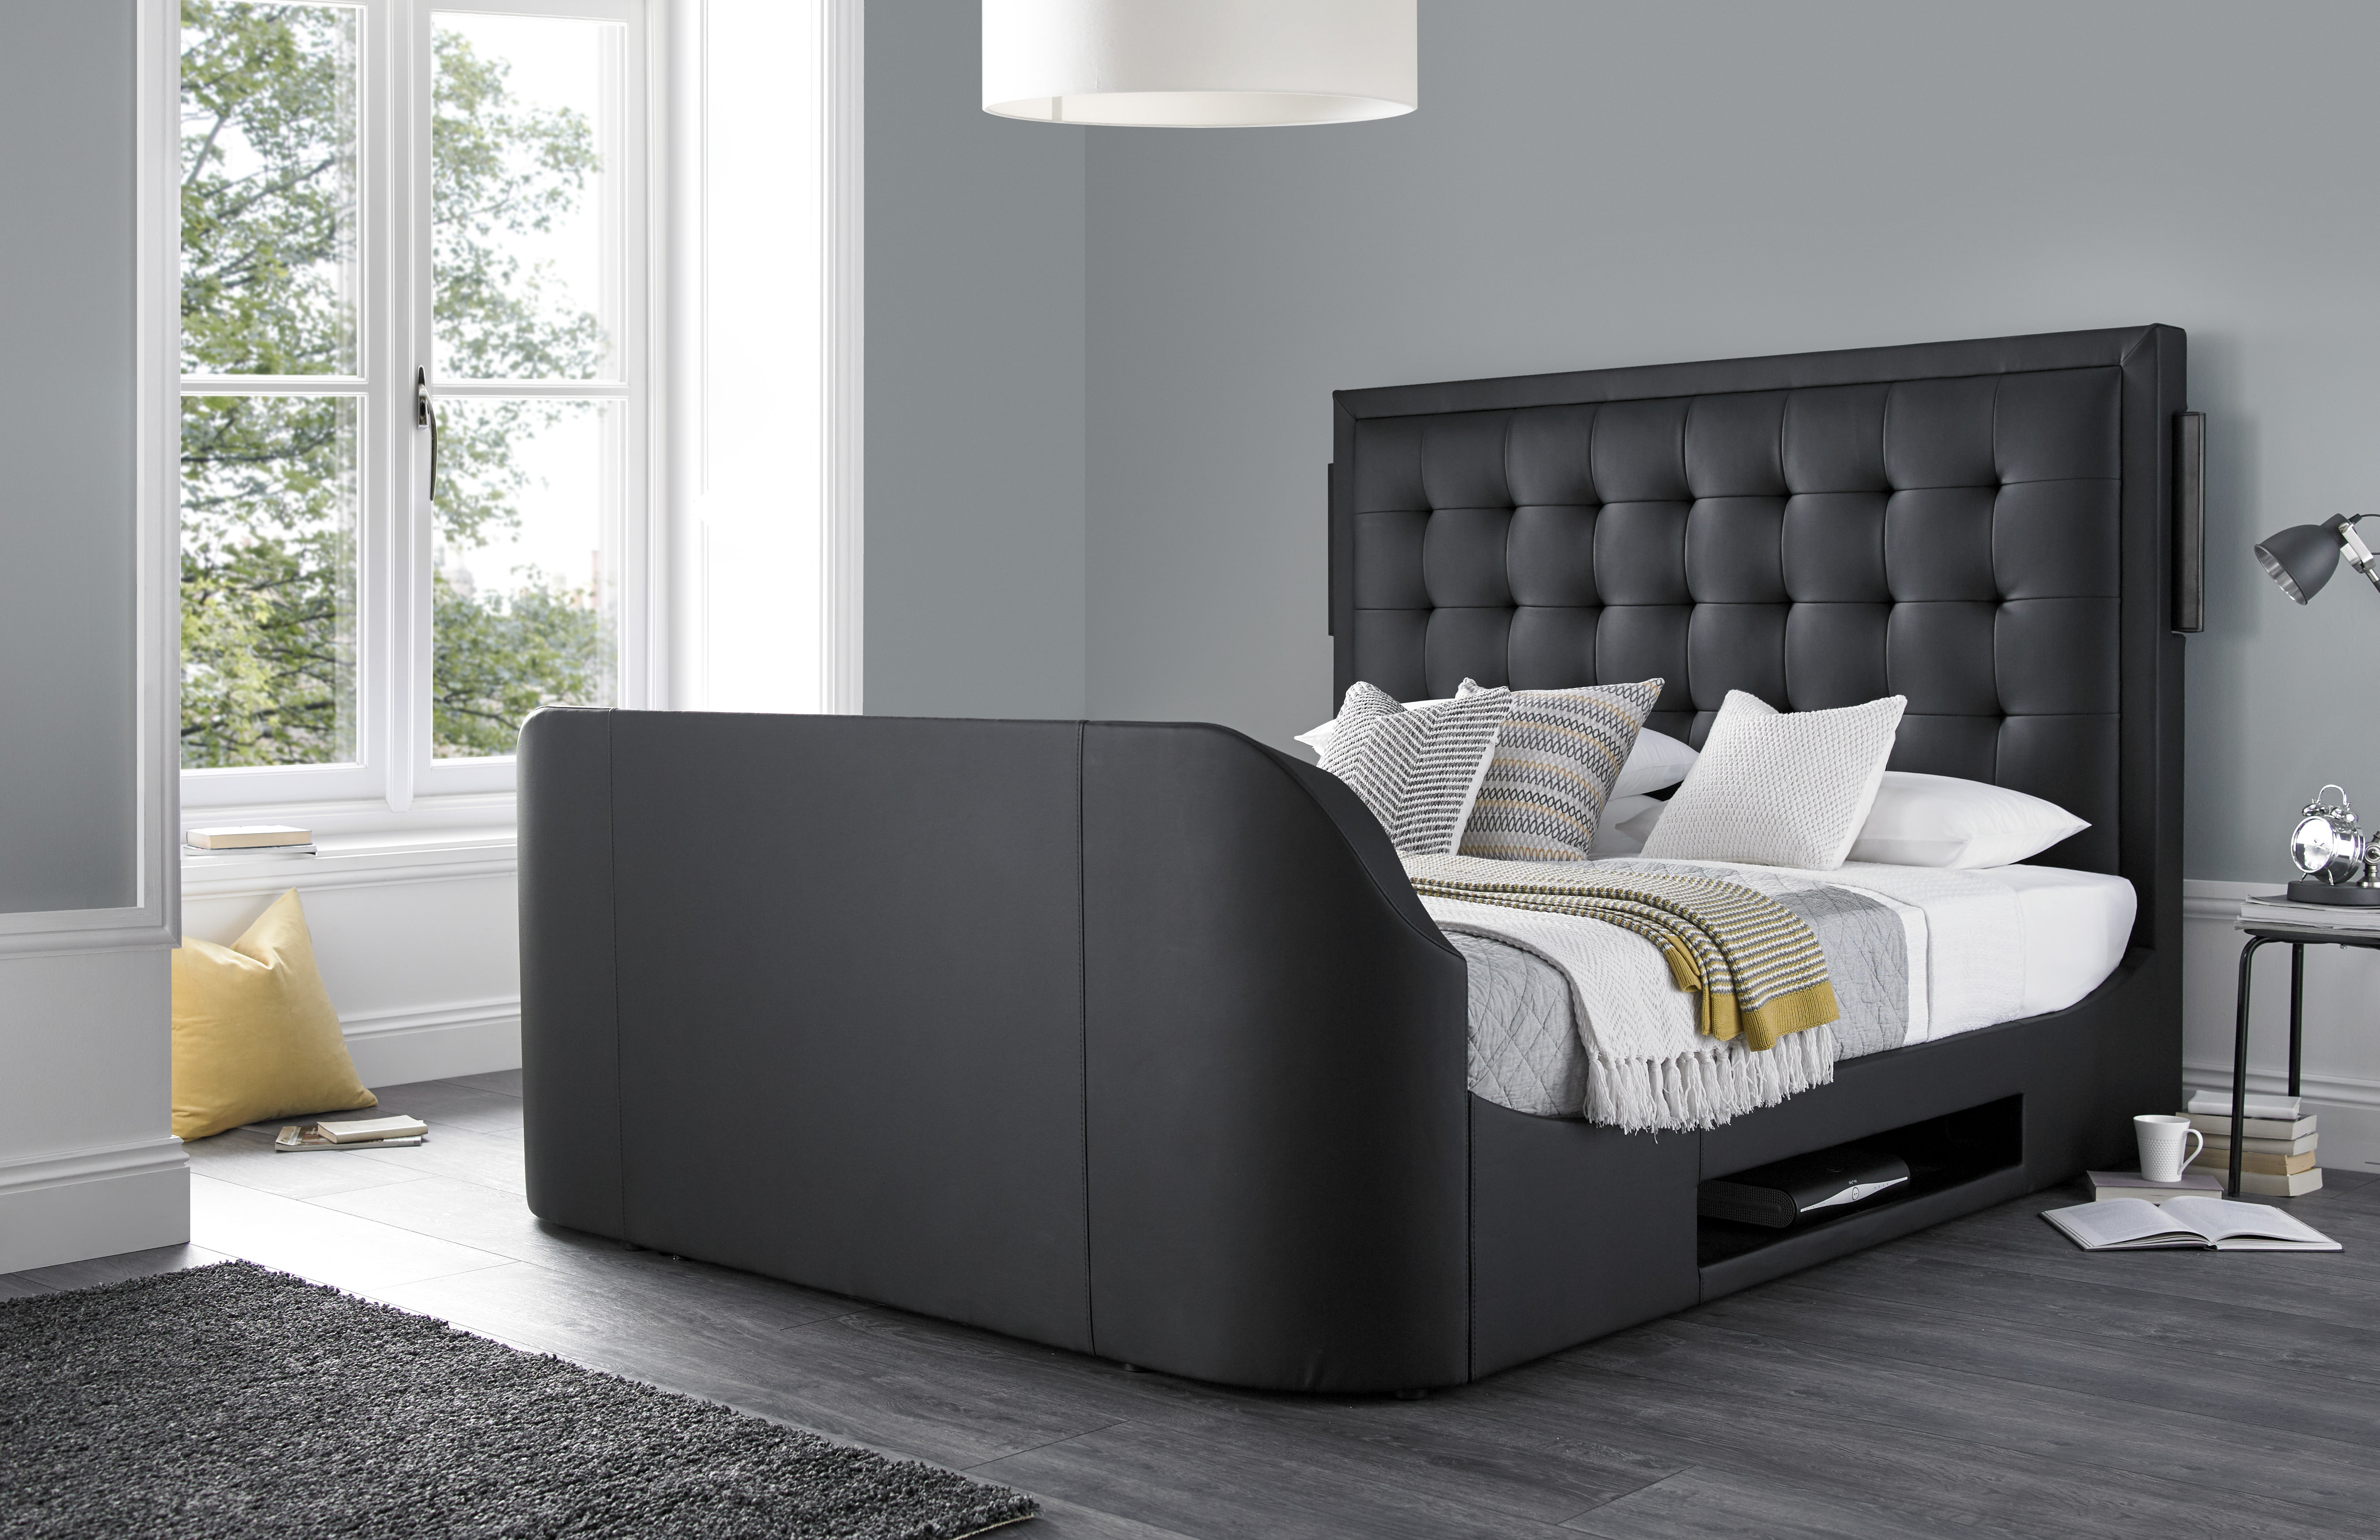 The Titan Super King Size Tv Bed Frame 0 Finance Available Tv